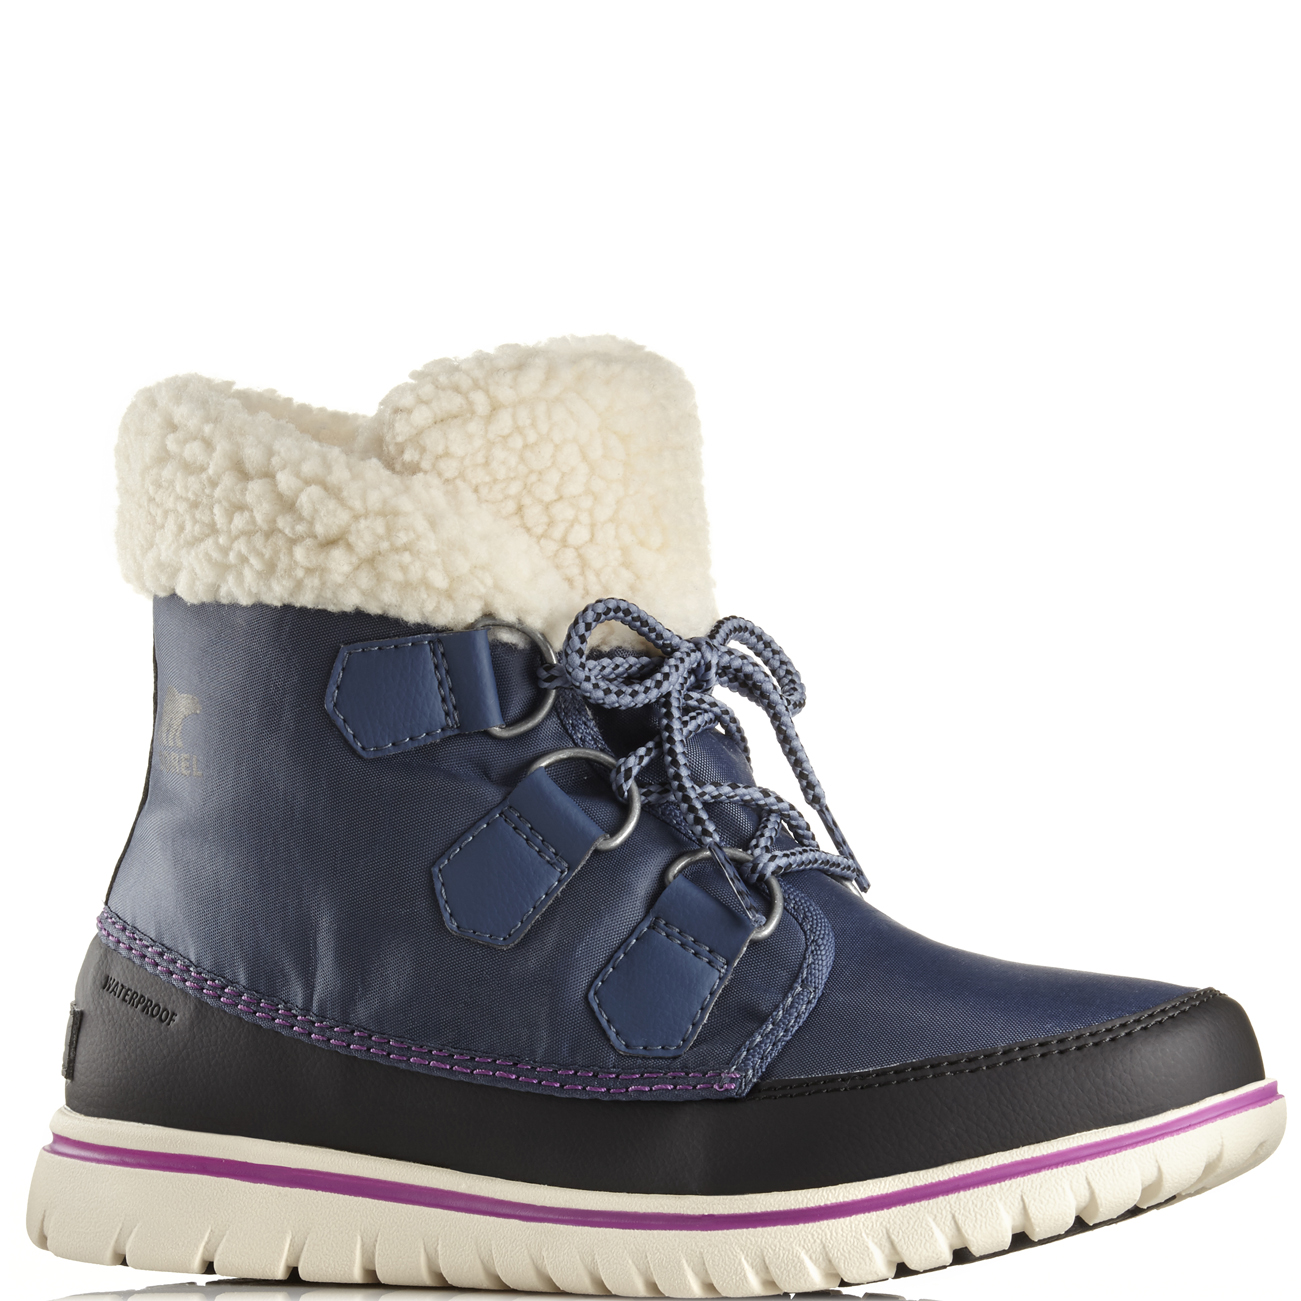 Sorel Confortable Bottines De Carnaval pXJtBR